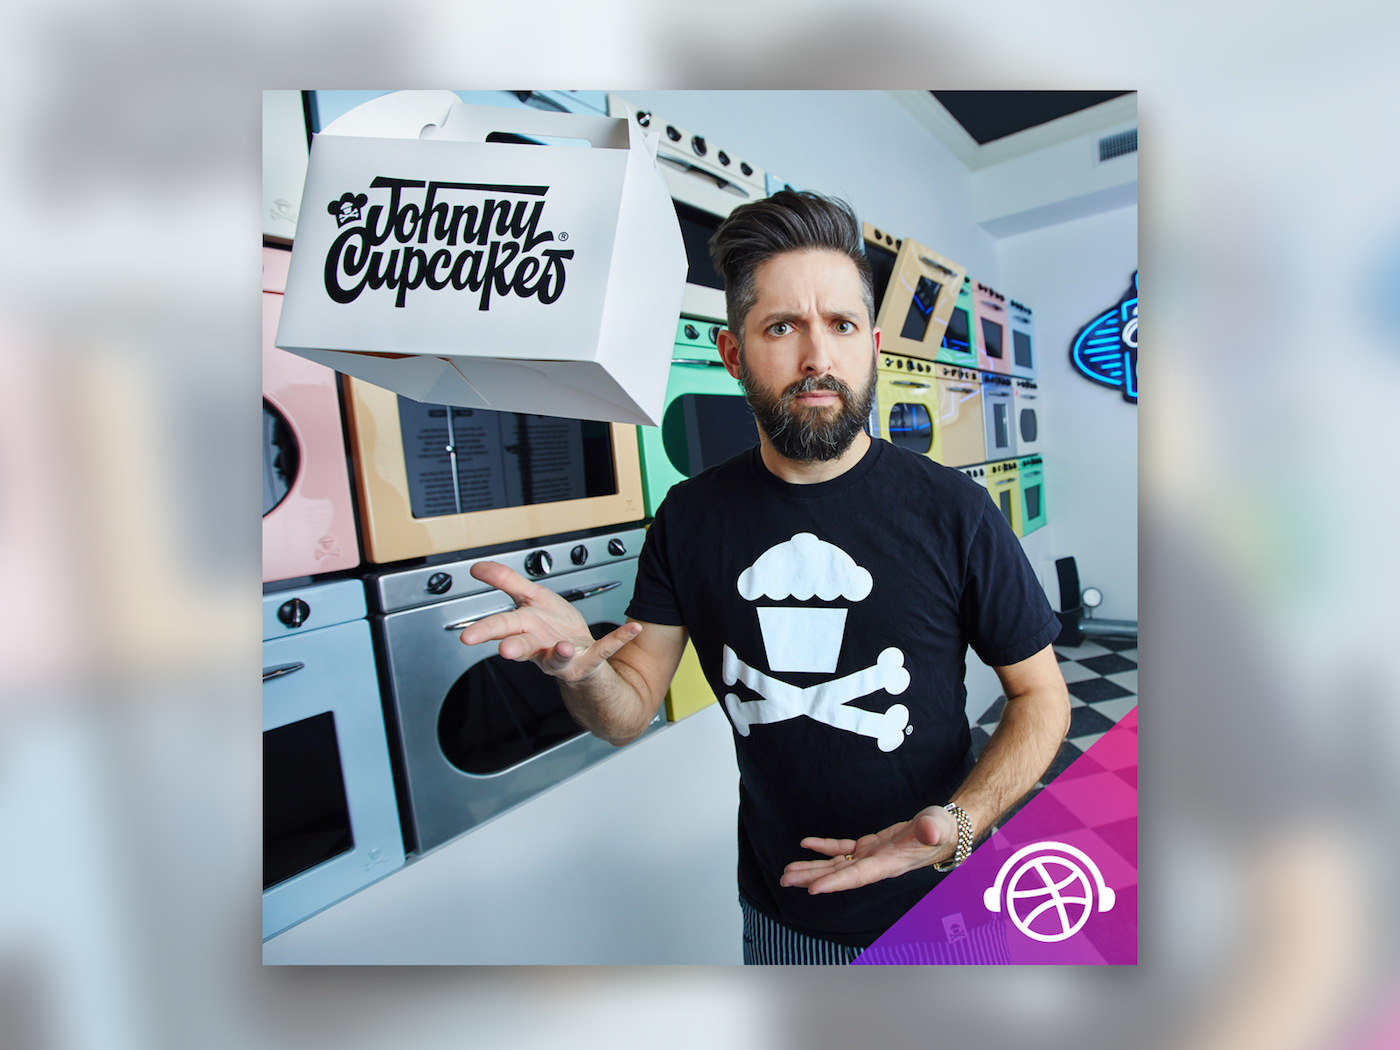 Overtime with Johnny Cupcakes